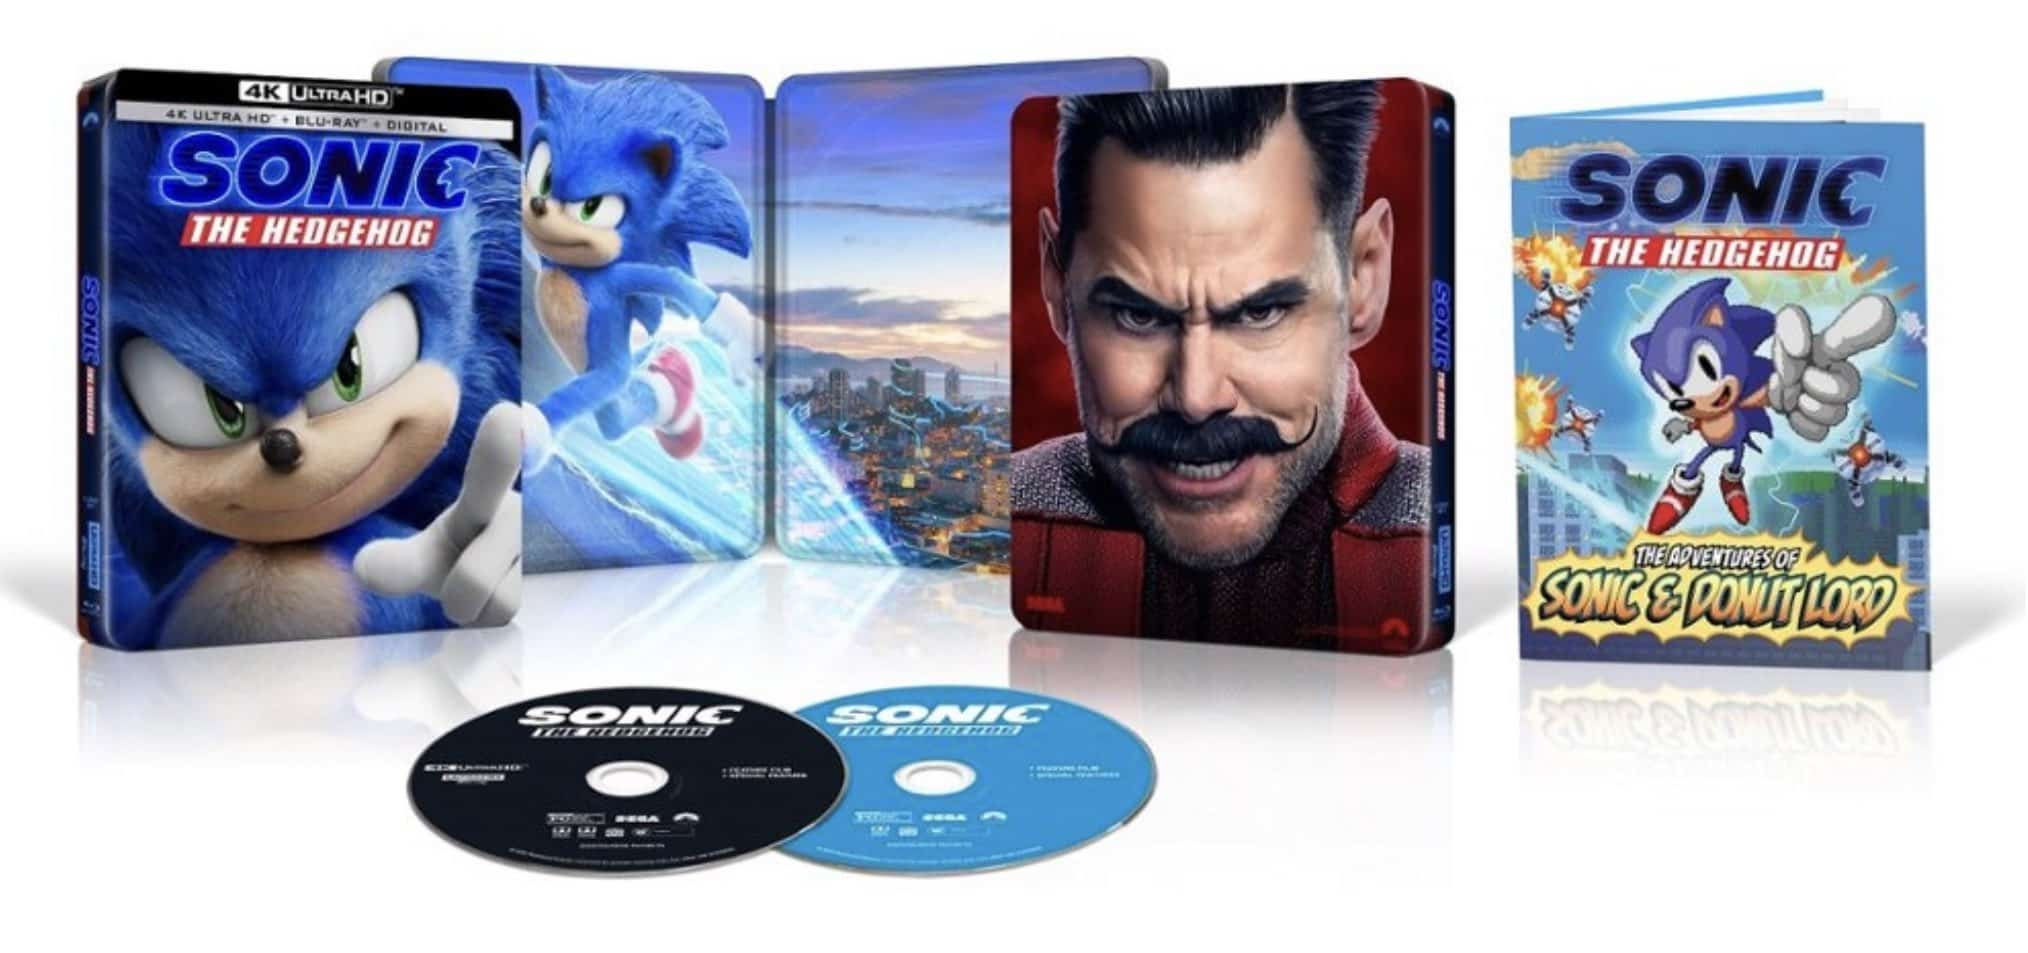 Sonic the Hedgehog is now available for purchase on Blu-ray, DVD, and 4K Ultra HD 15